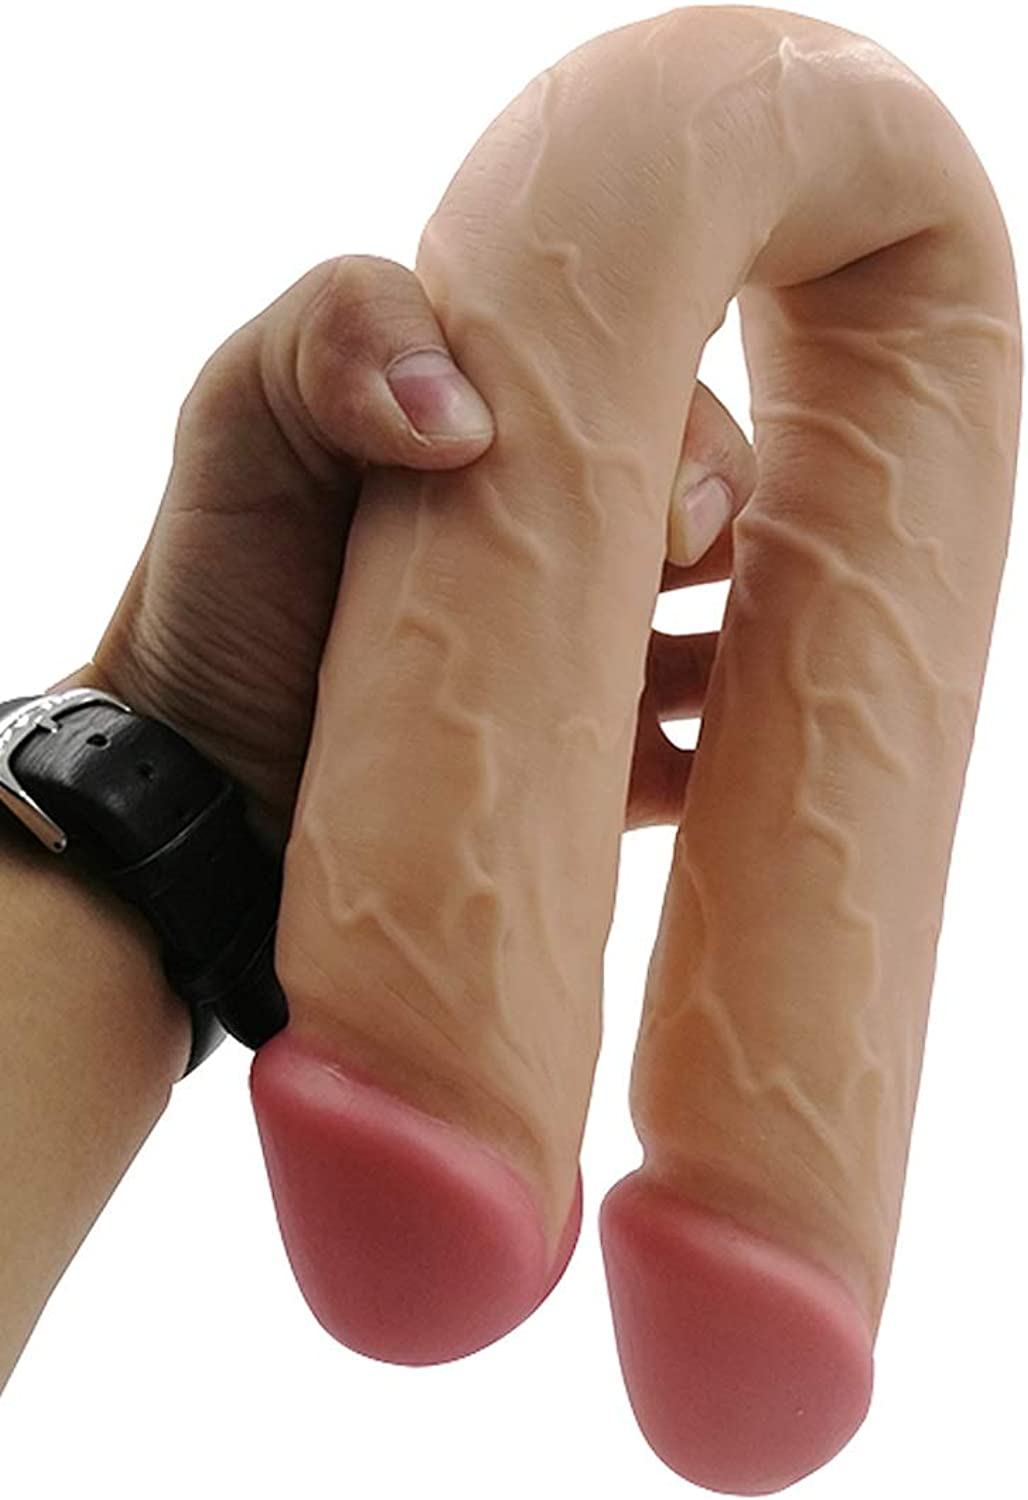 Flesh Realistic Double EndedToy for Beginners Advanced Users Best Gift for Women